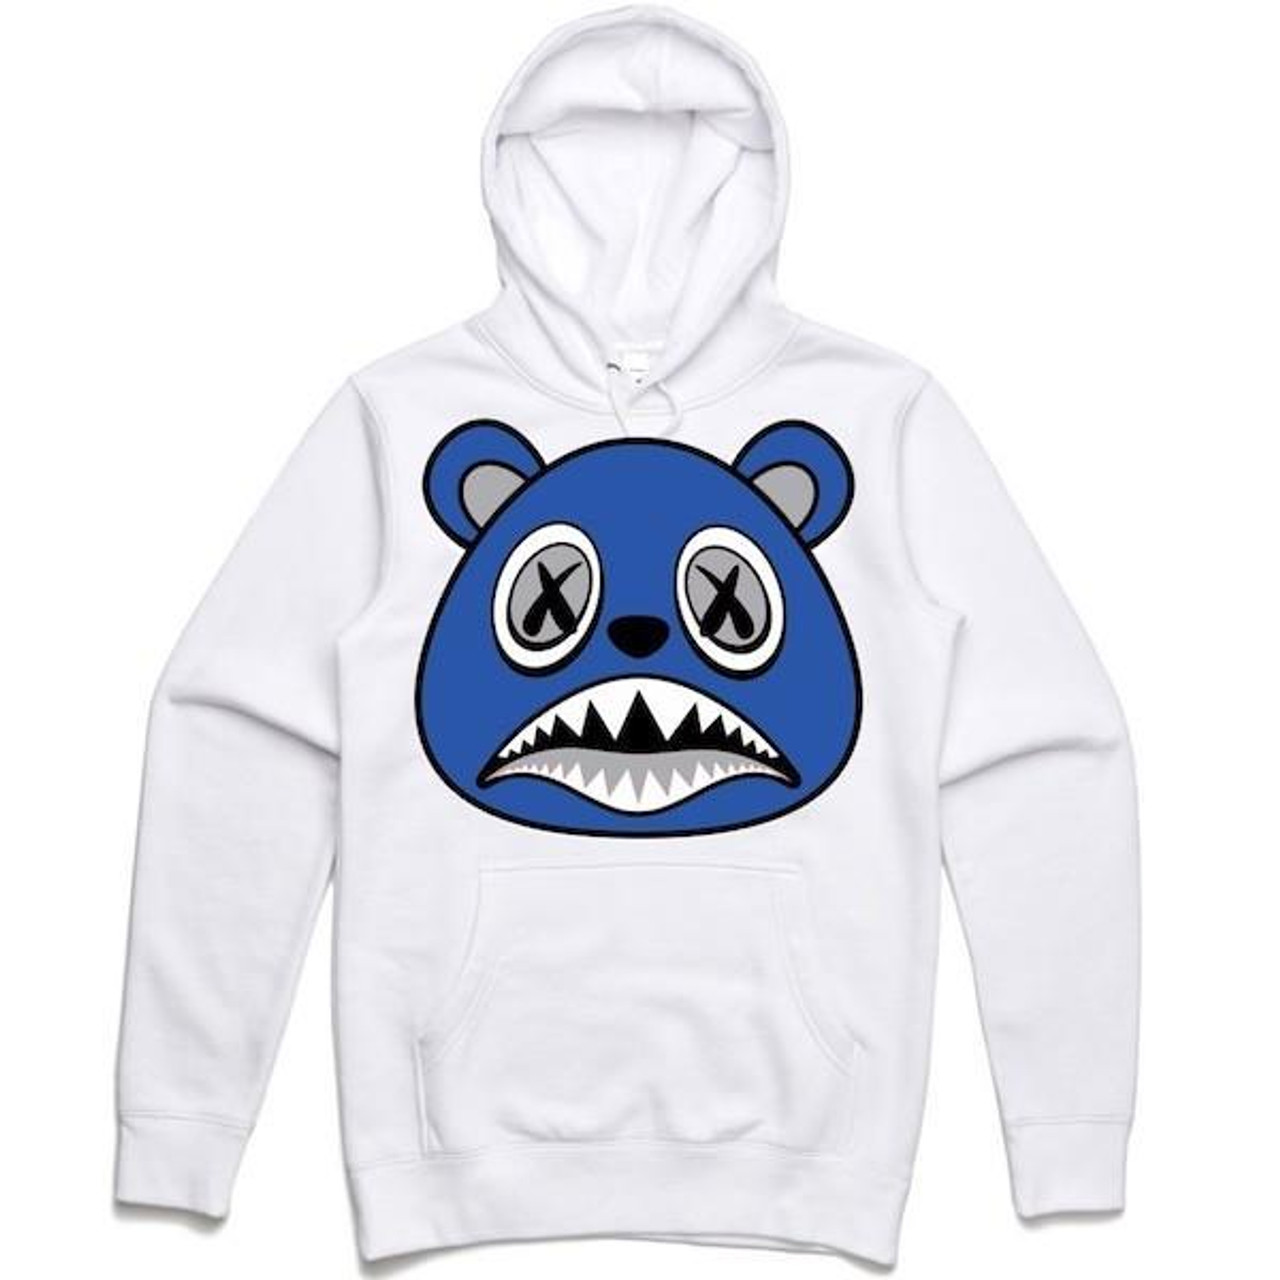 ed21e0a9336d BAWS Bear Blue Logo White Hoodie - KCT Streetwear is the OFFICIAL ...